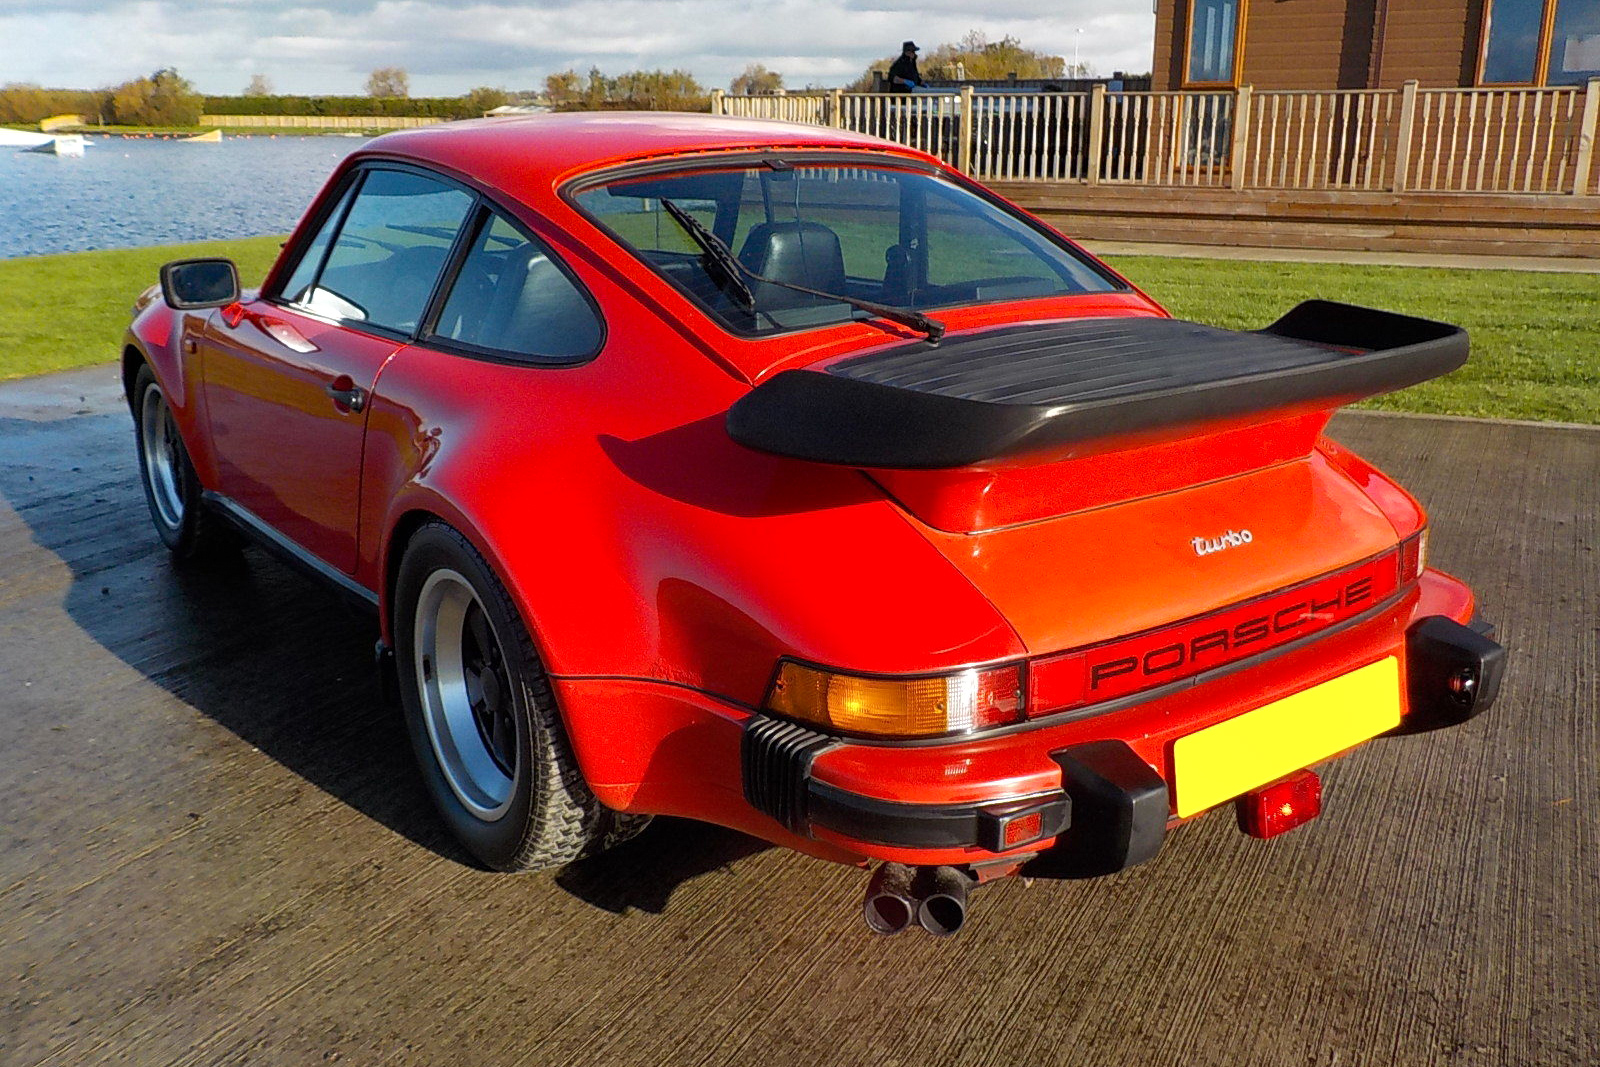 Ebay Porsche 930 911 Turbo Price Drop Ferdinand